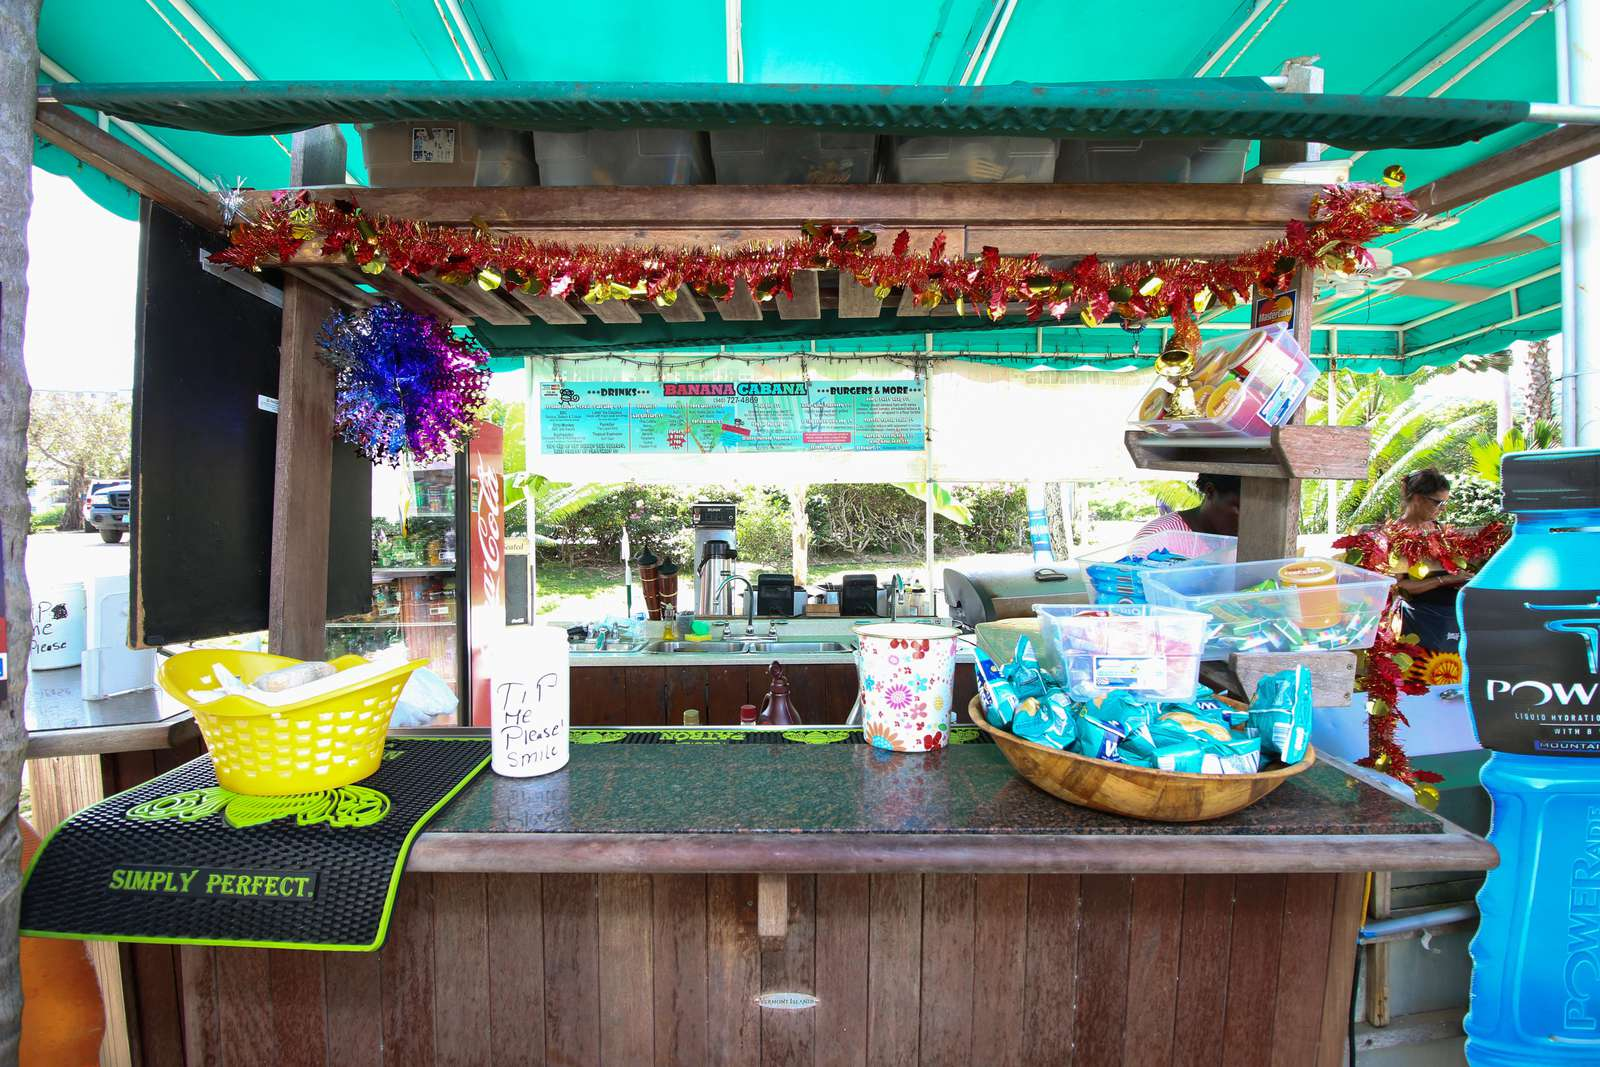 Beach Hut with drinks and snacks